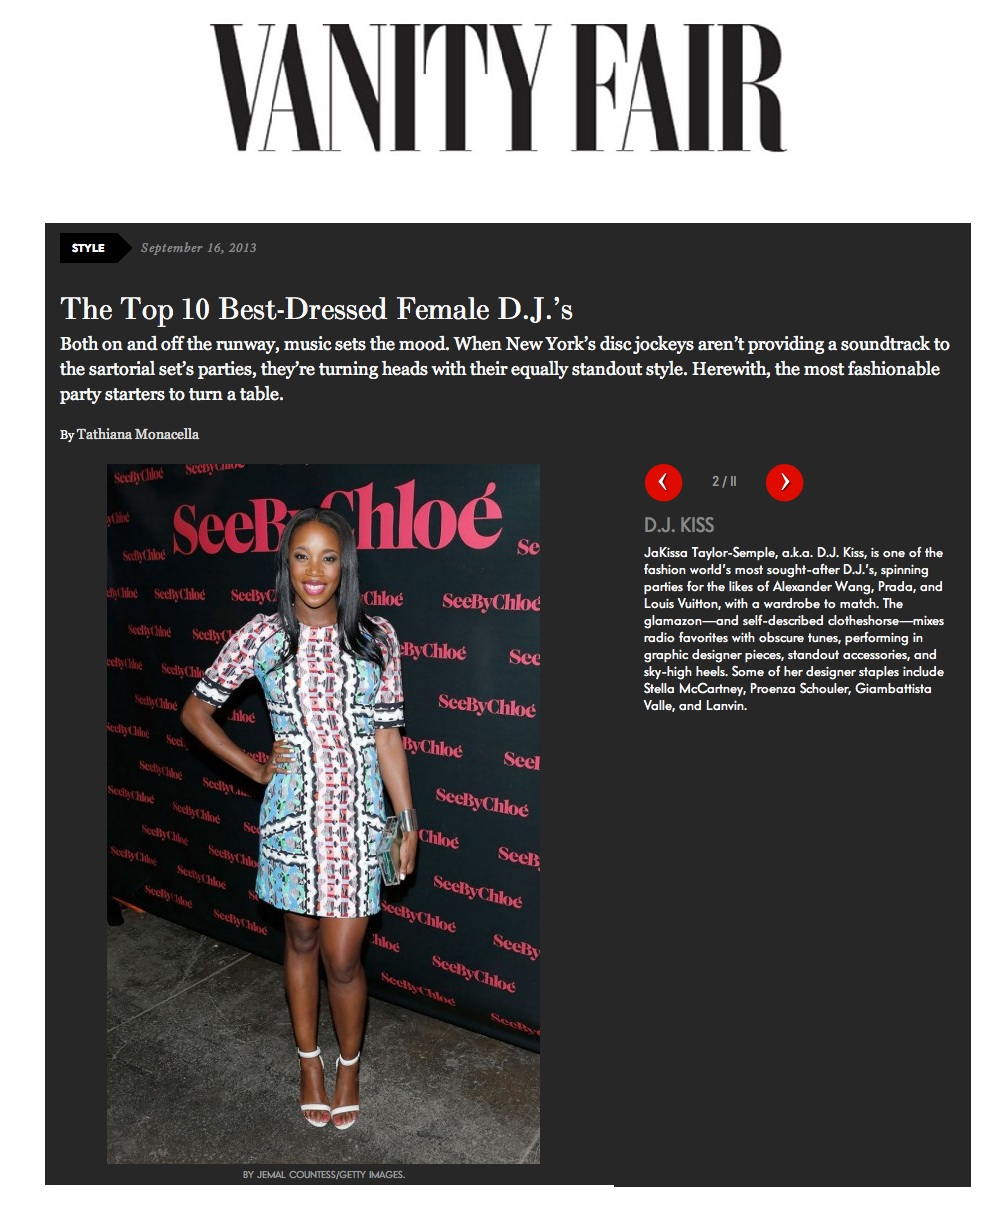 Vanity Fair - Best Female Dressed DJs